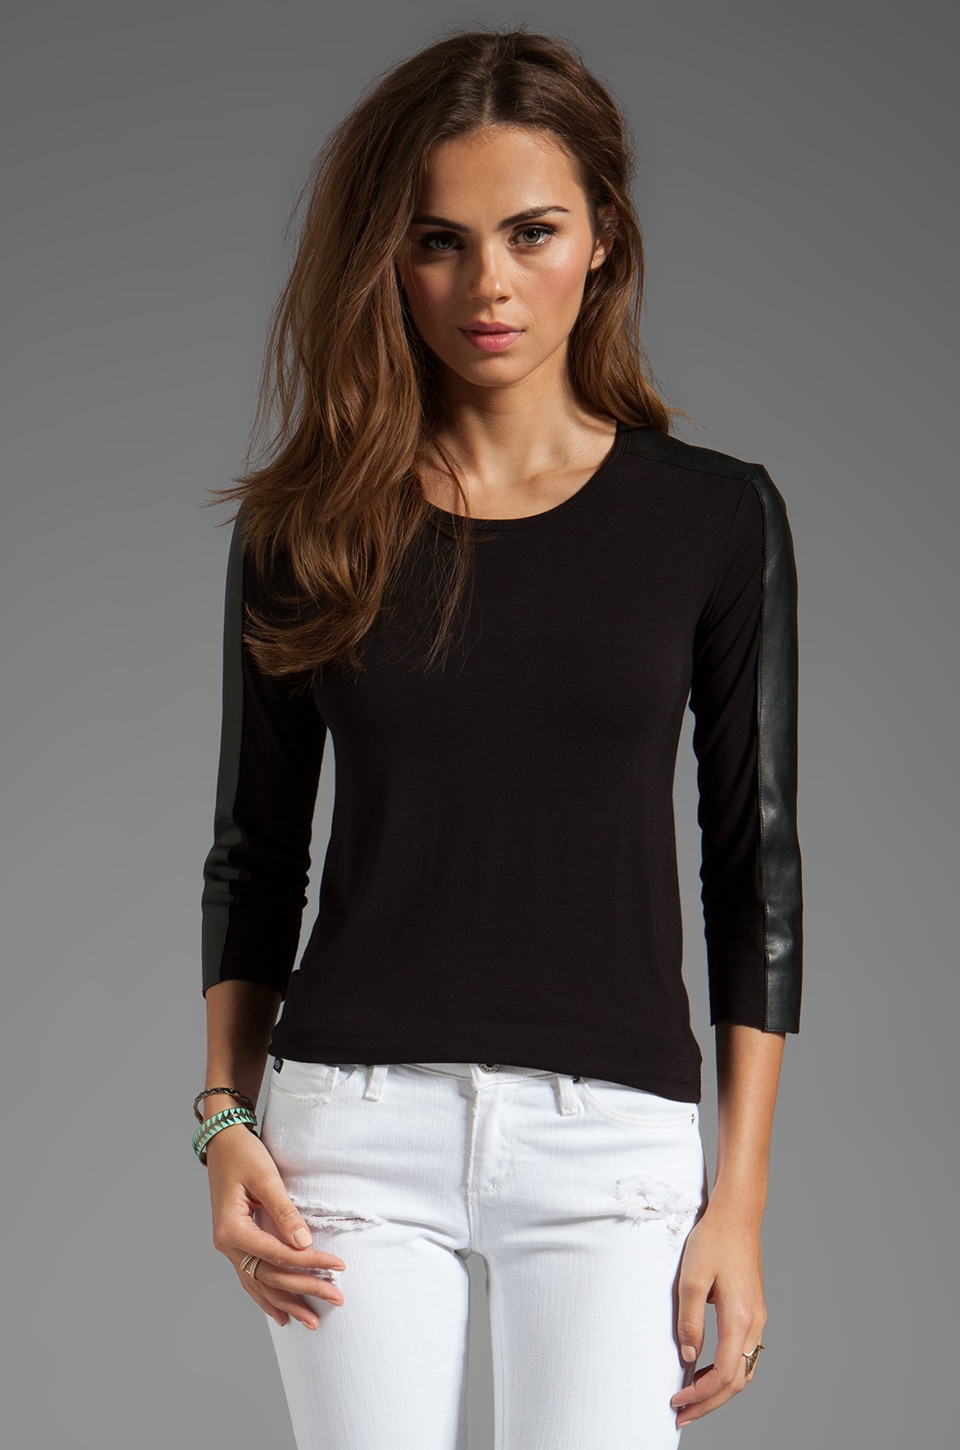 Bailey 44 Solid Couplet Top in Black